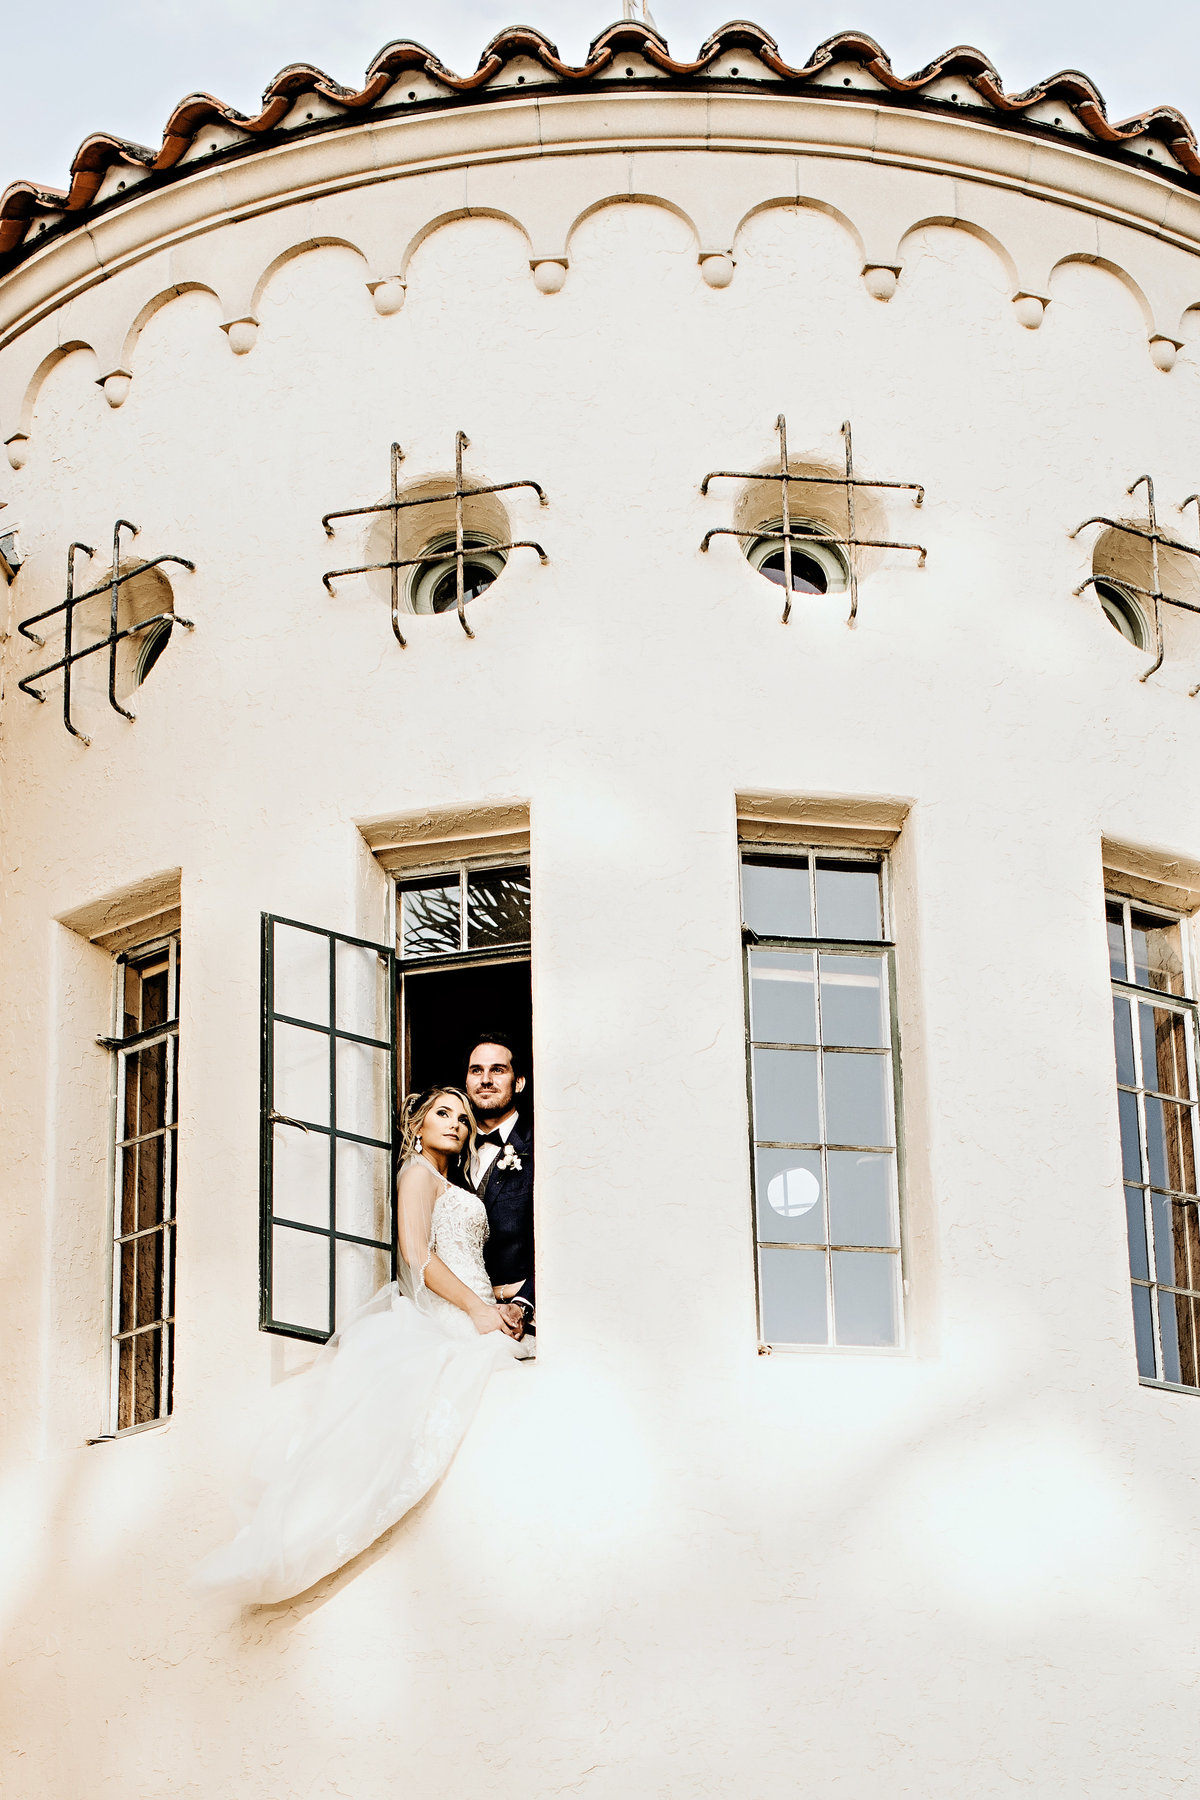 A picture from outside at a distance of a bridal couple standing close together in an opened window in a picturesque tower at their wedding venue